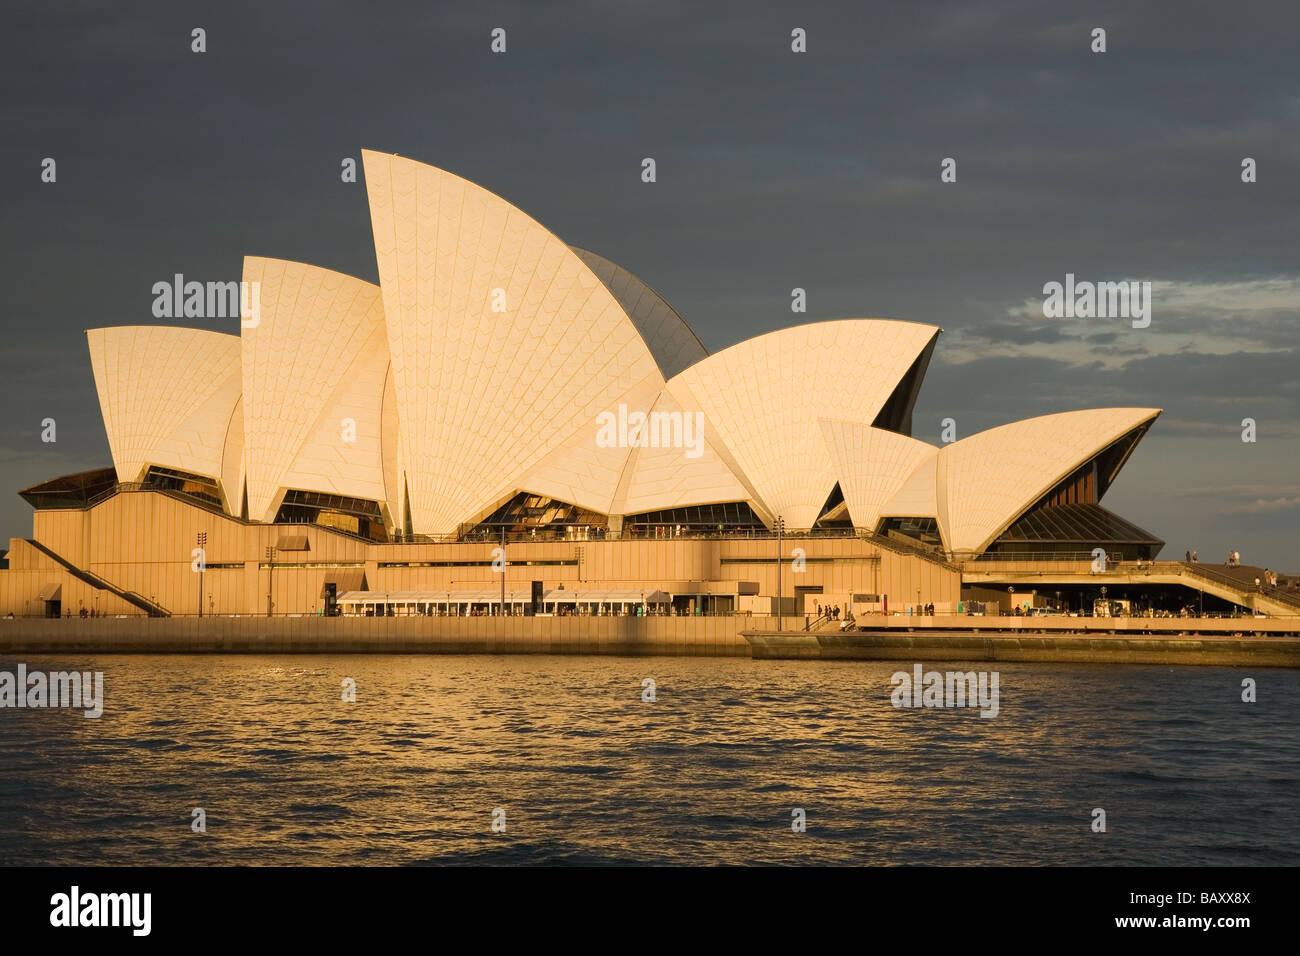 The Opera House designed by Jorn Utzon and built 1973 by Circular Quay at sunset Sydney New South Wales Australia - Stock Image